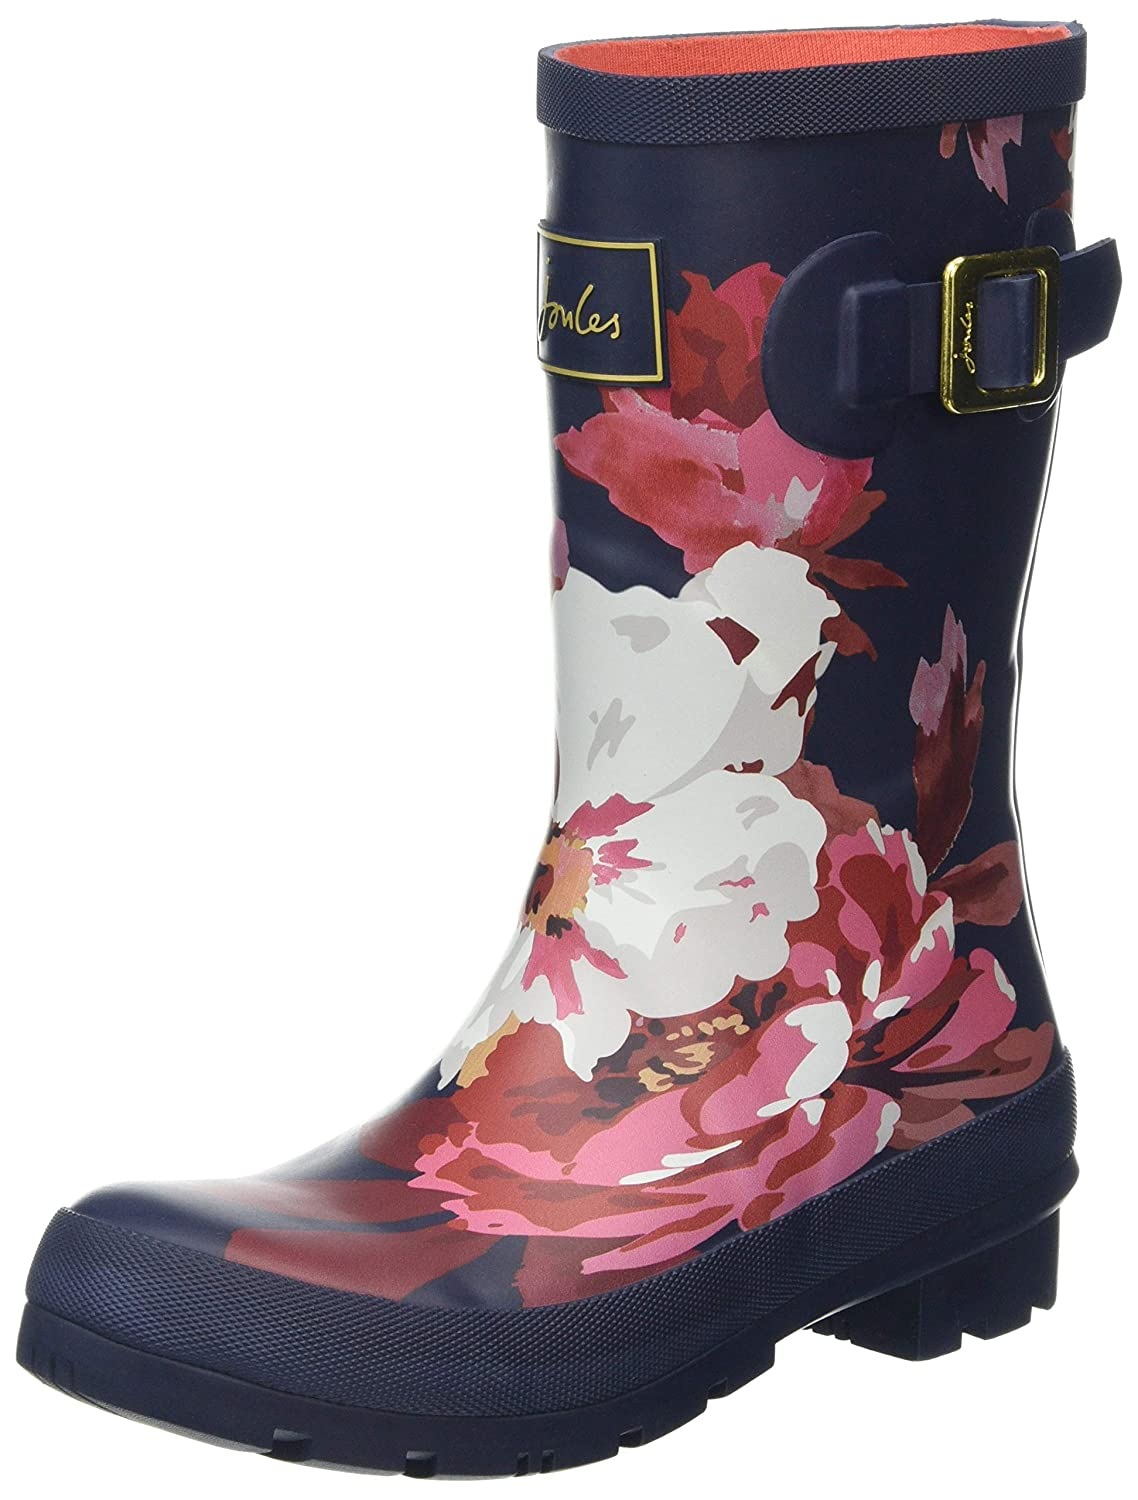 French Navy Bircham Bloom Joules Women's Molly Welly Rain